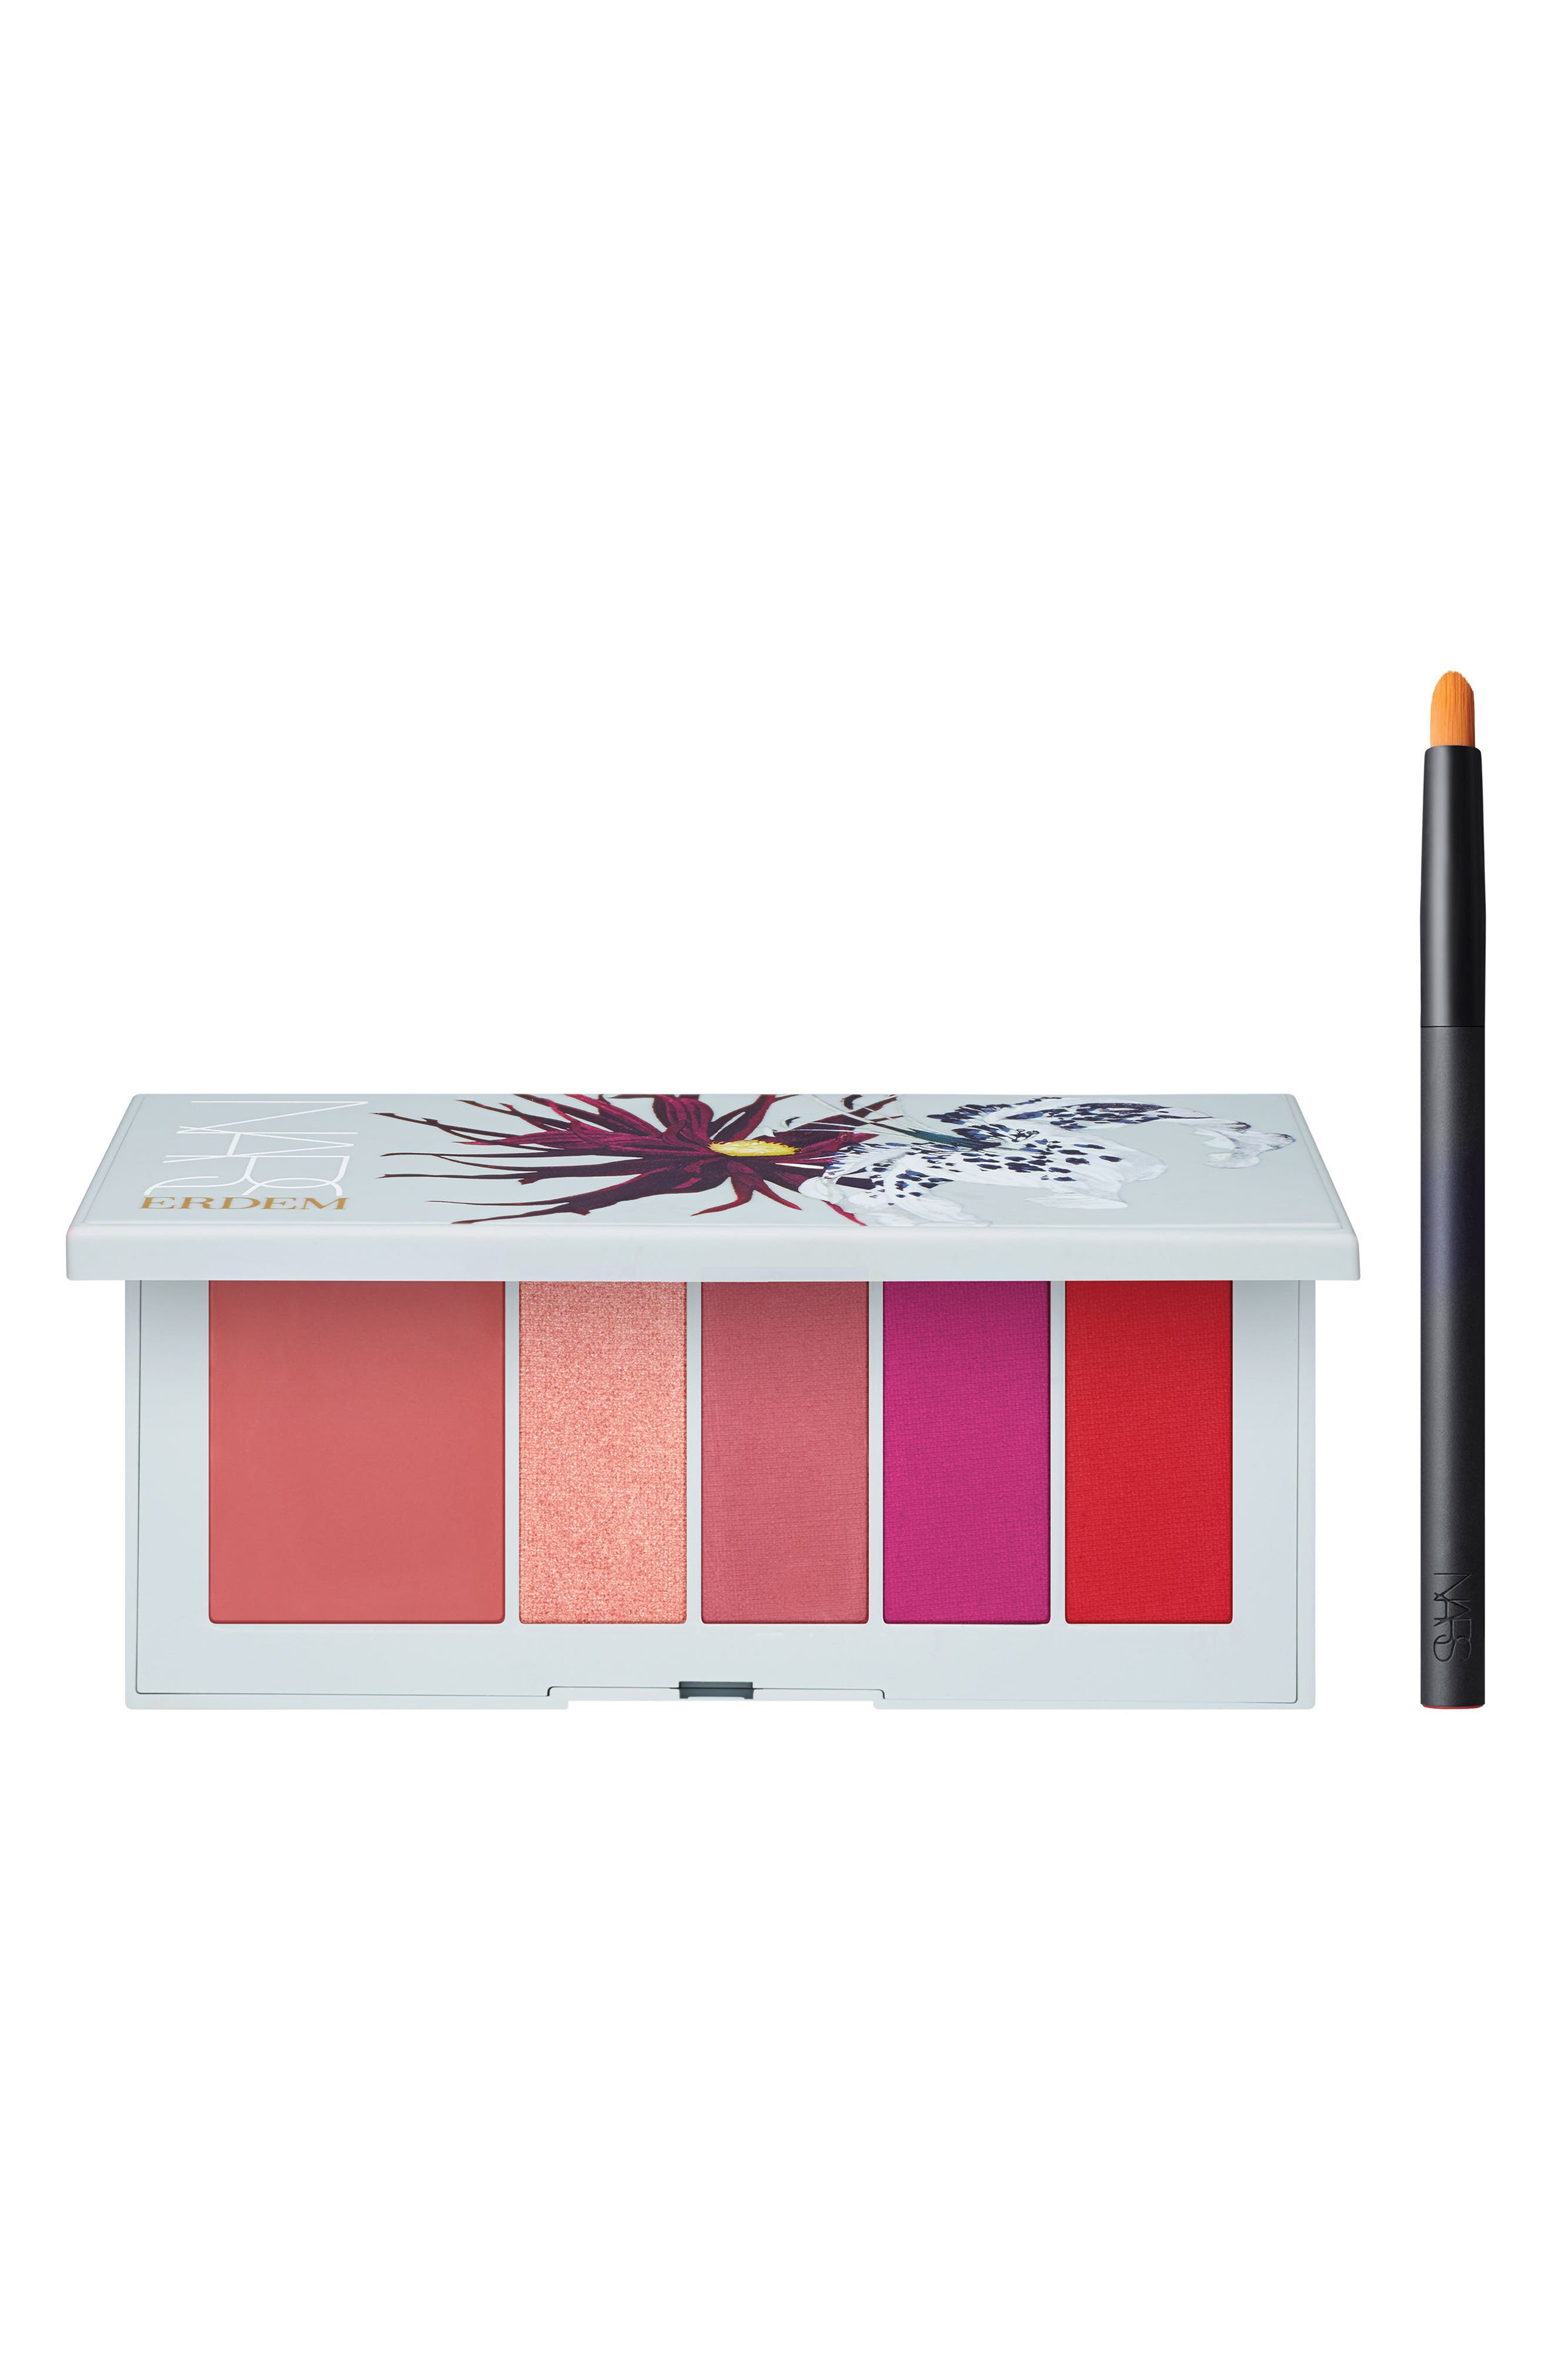 NARS x Erdem Strange Flowers Poision Lip Powder Palette (Limited Edition)